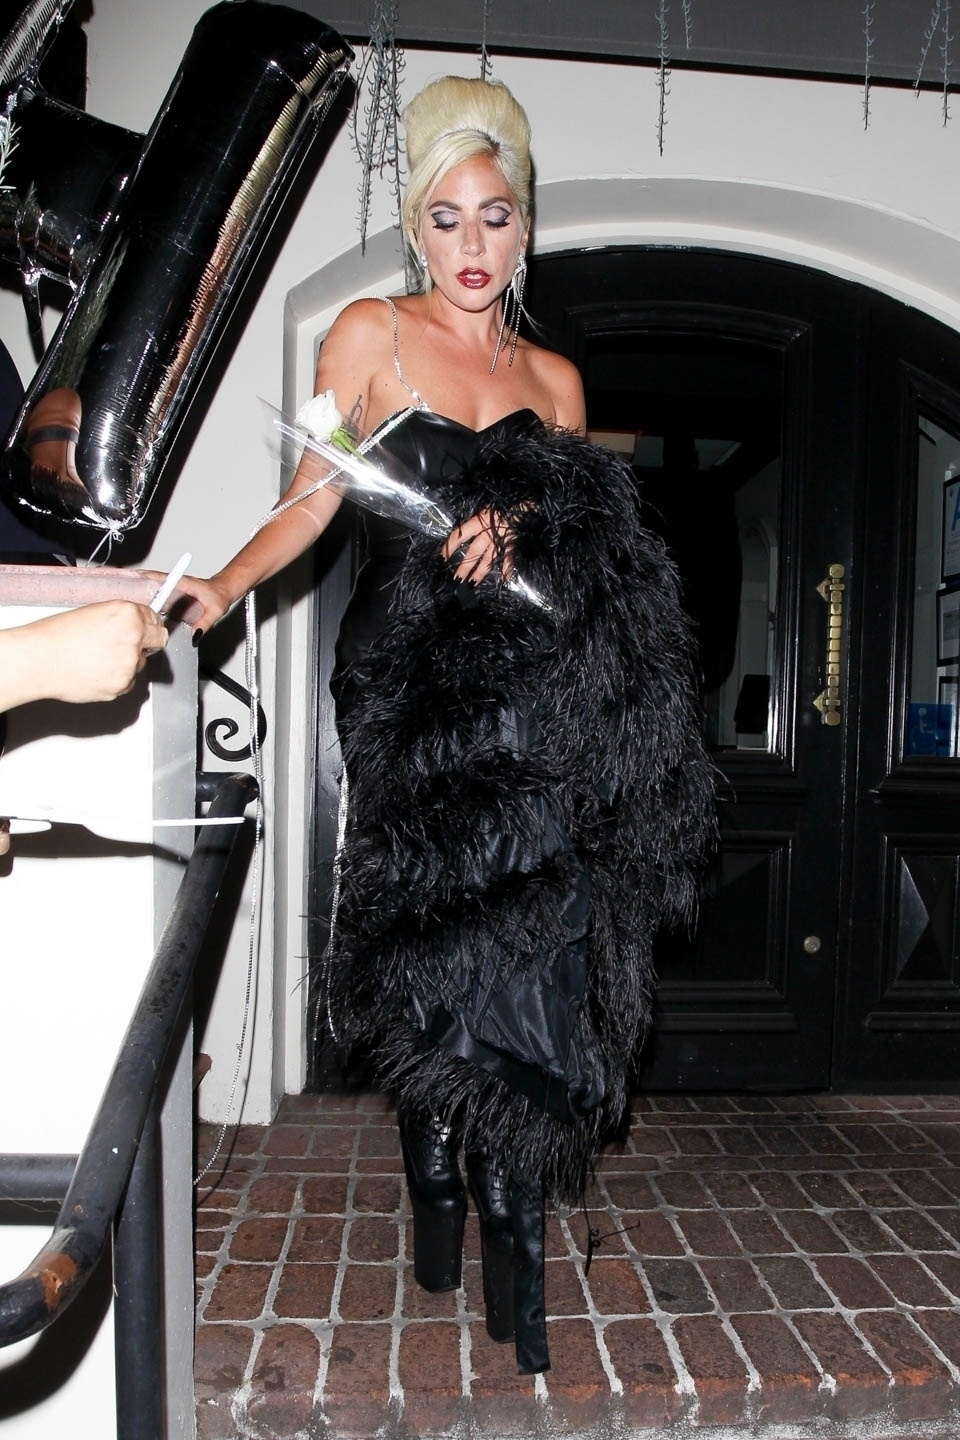 Lady Gaga looked extra fierce while leaving a party celebrating the launch of her new beauty brand, Haus Laboratories, in West Hollywood on July 17, 2019.